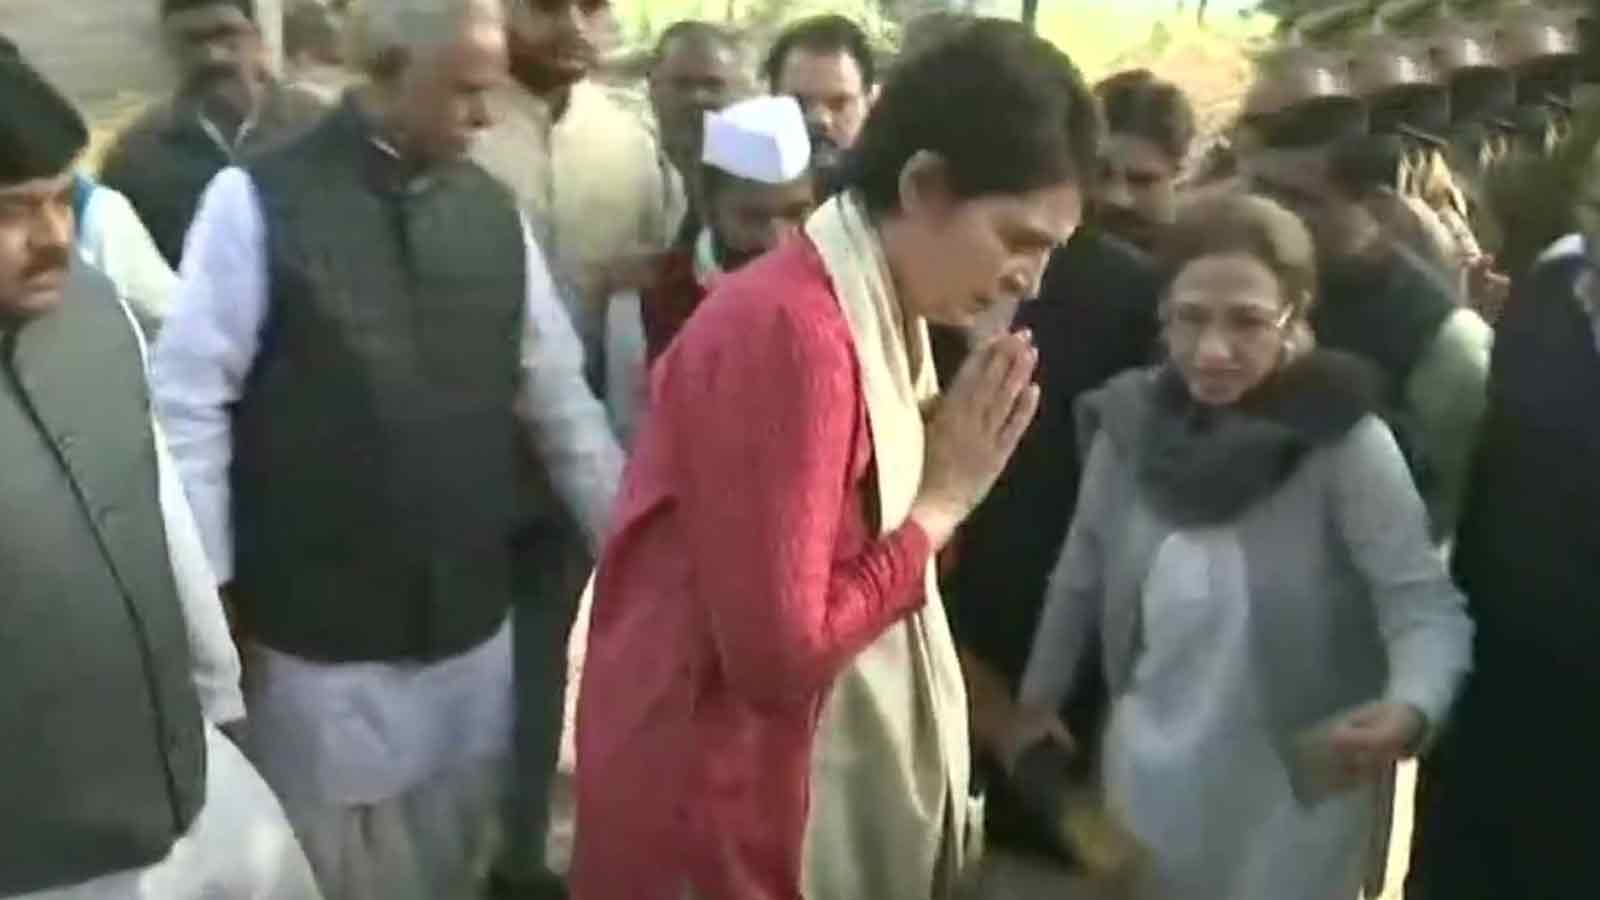 unnao-rape-priyanka-gandhi-meets-victims-kin-attacks-up-govt-for-failing-law-and-order-situation